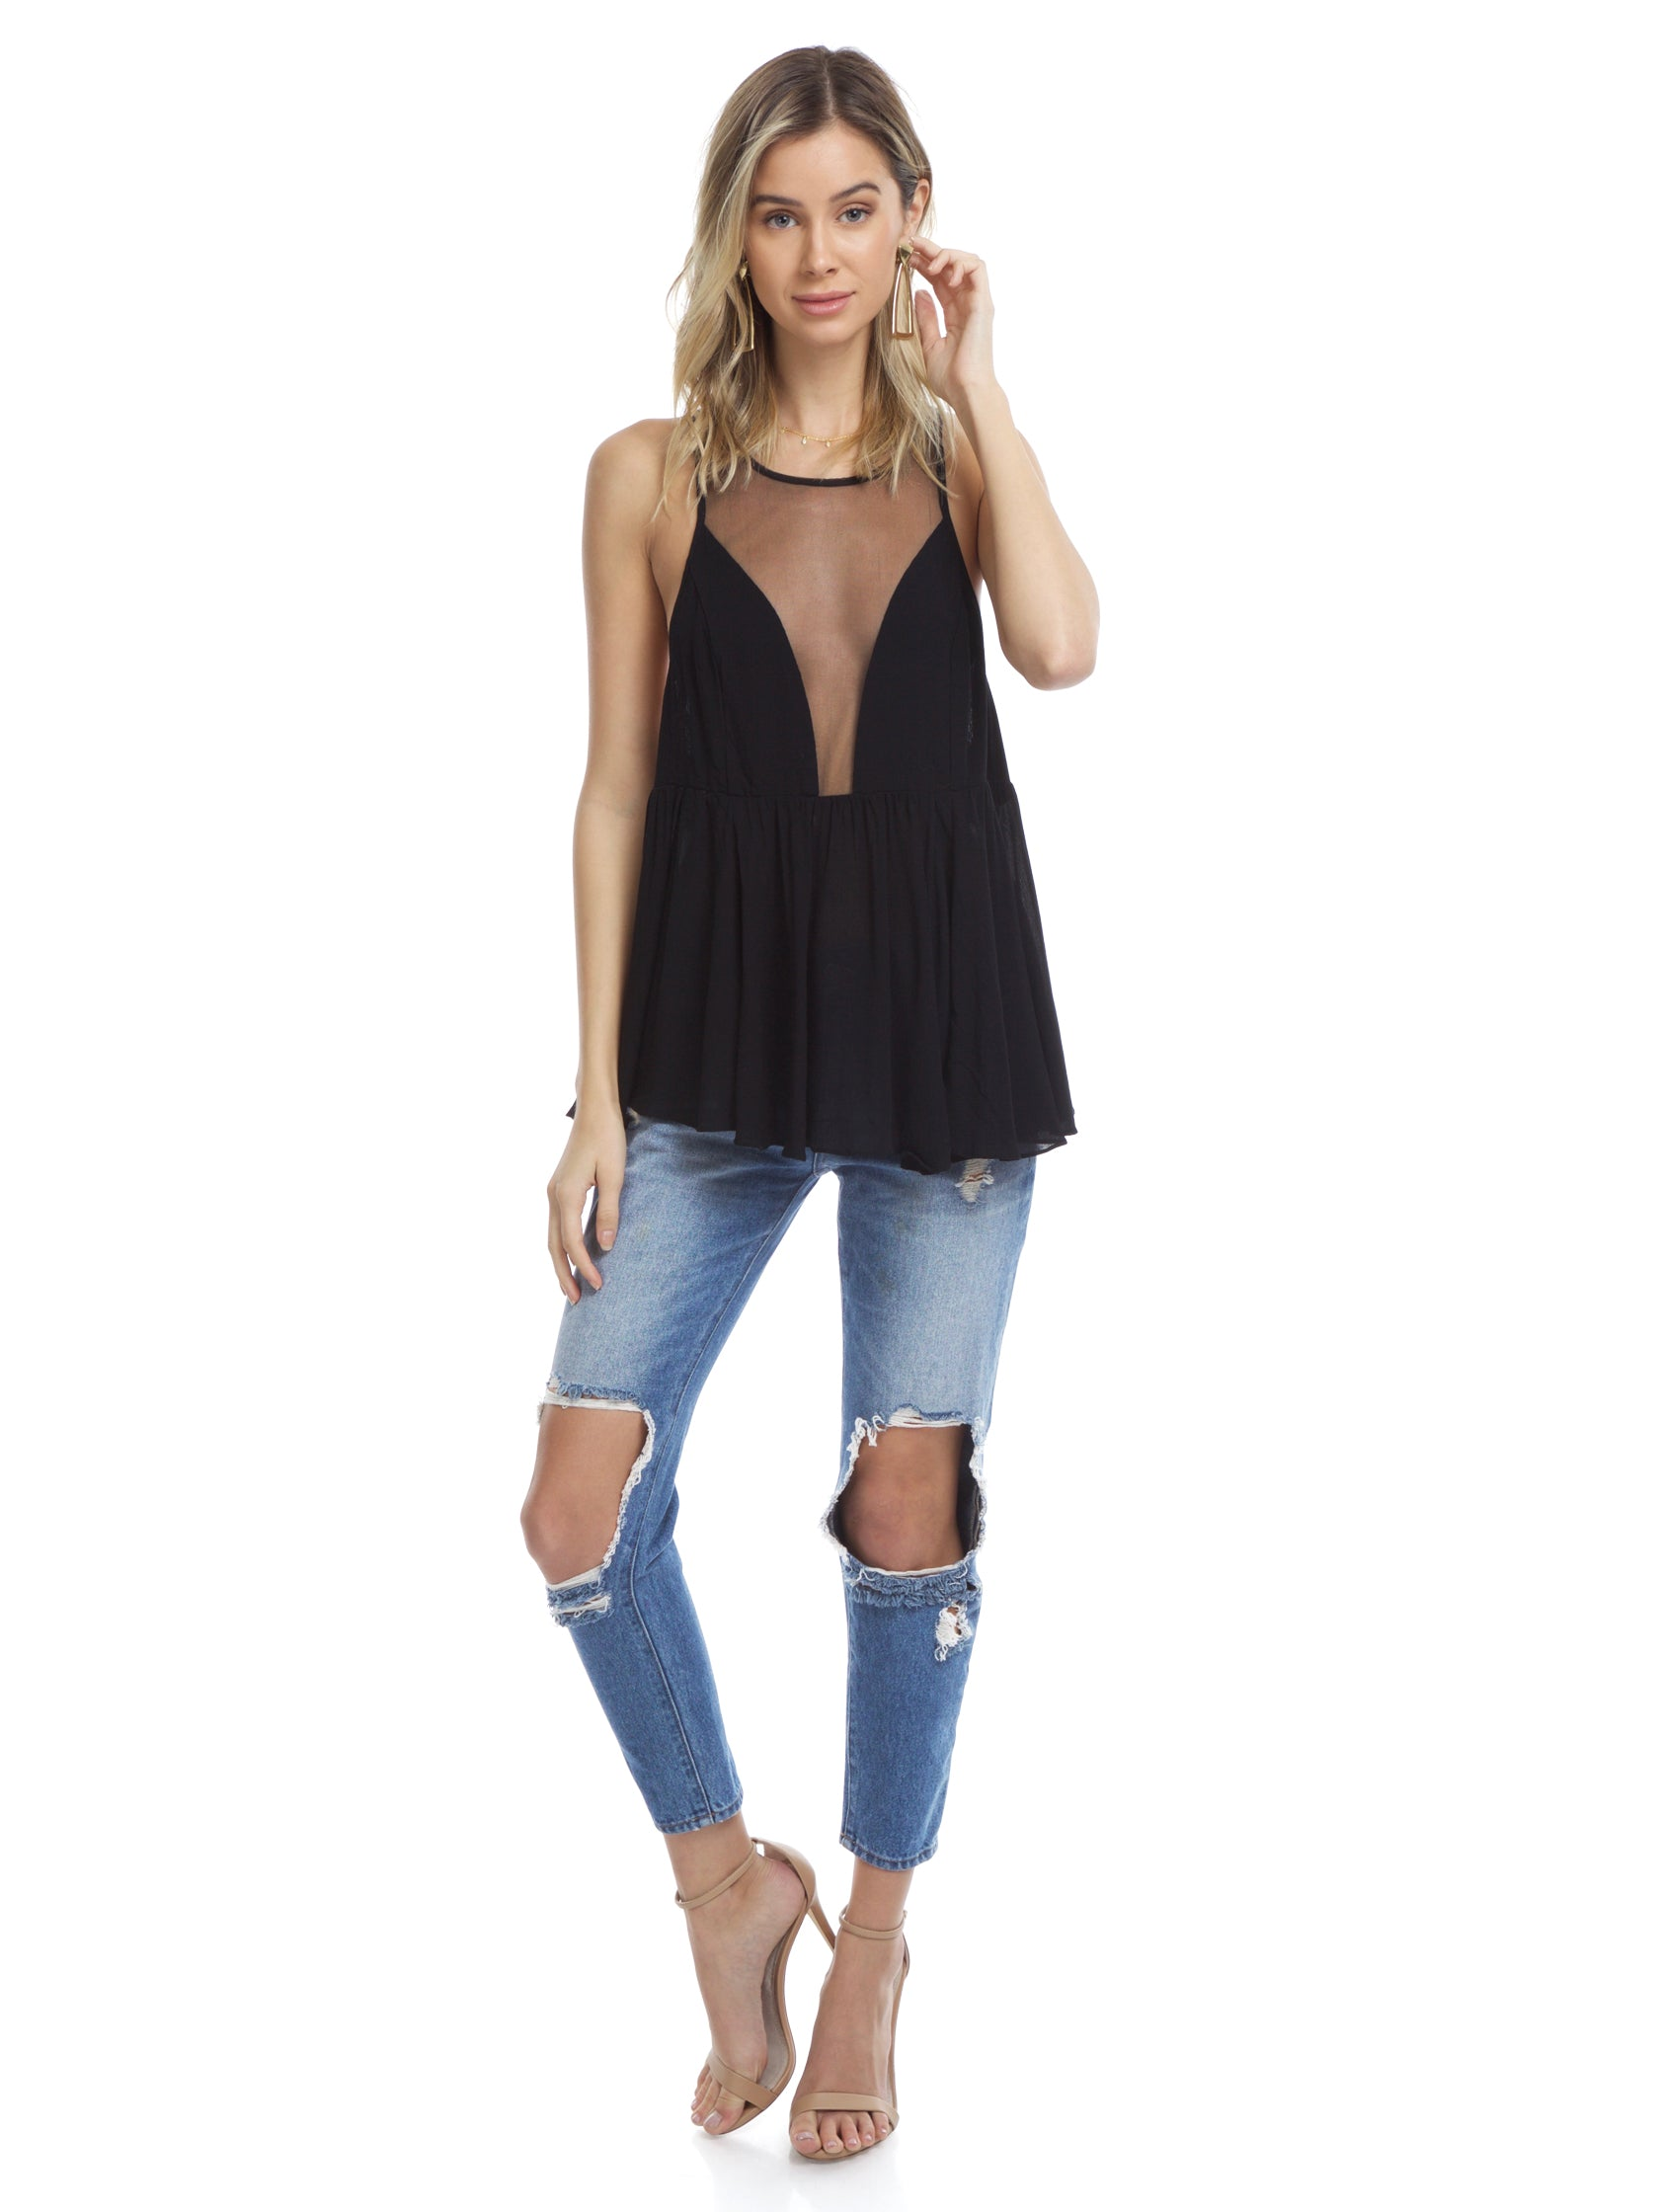 Girl wearing a top rental from Free People called Black Marble Cami